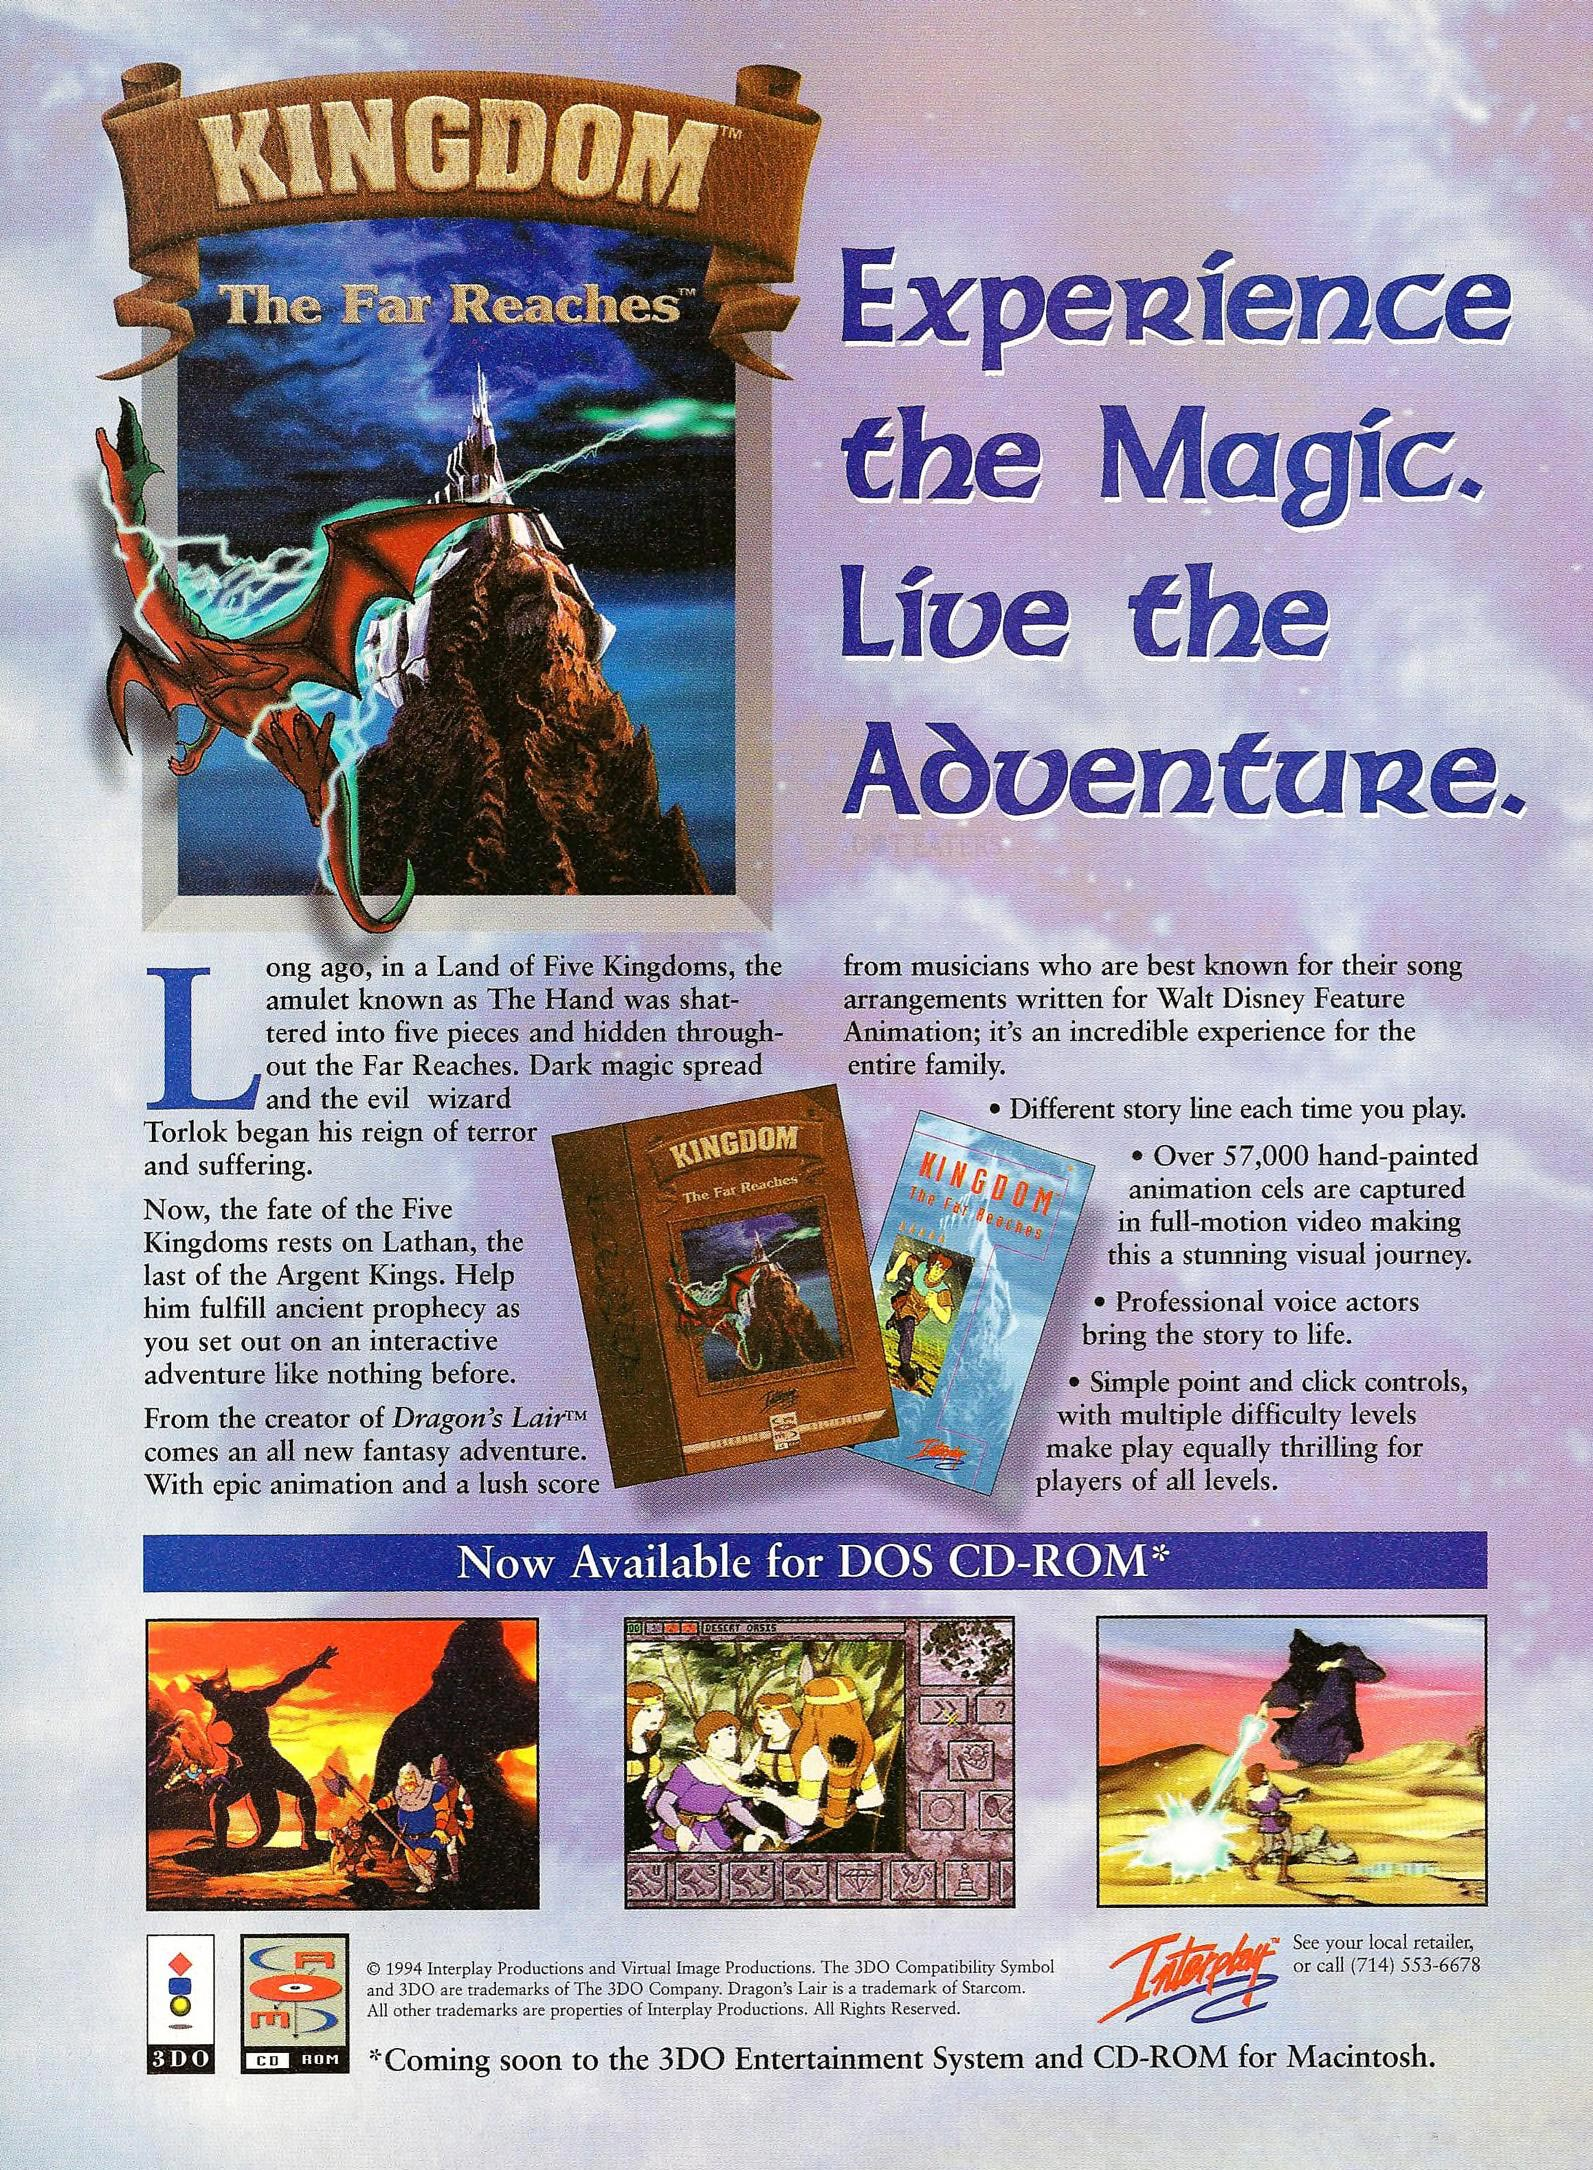 Ad for Kingdom: The Far Reaches, a computer video game by the creator of Dragon's Lair